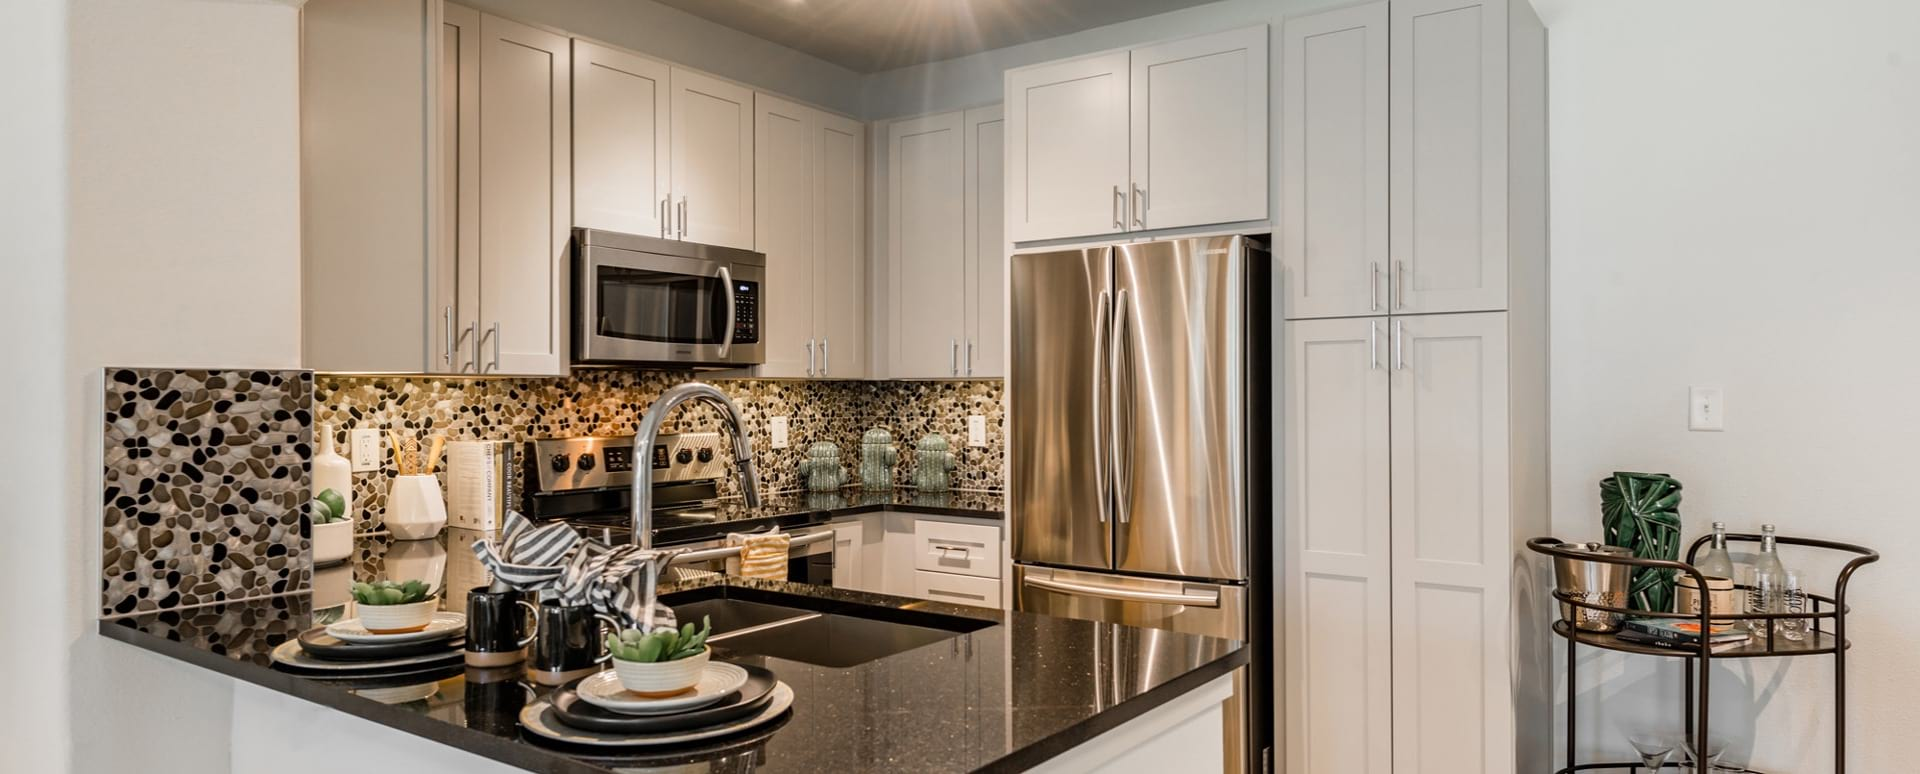 Spacious kitchen with stainless appliances at our upscale apartments in Houston, TX